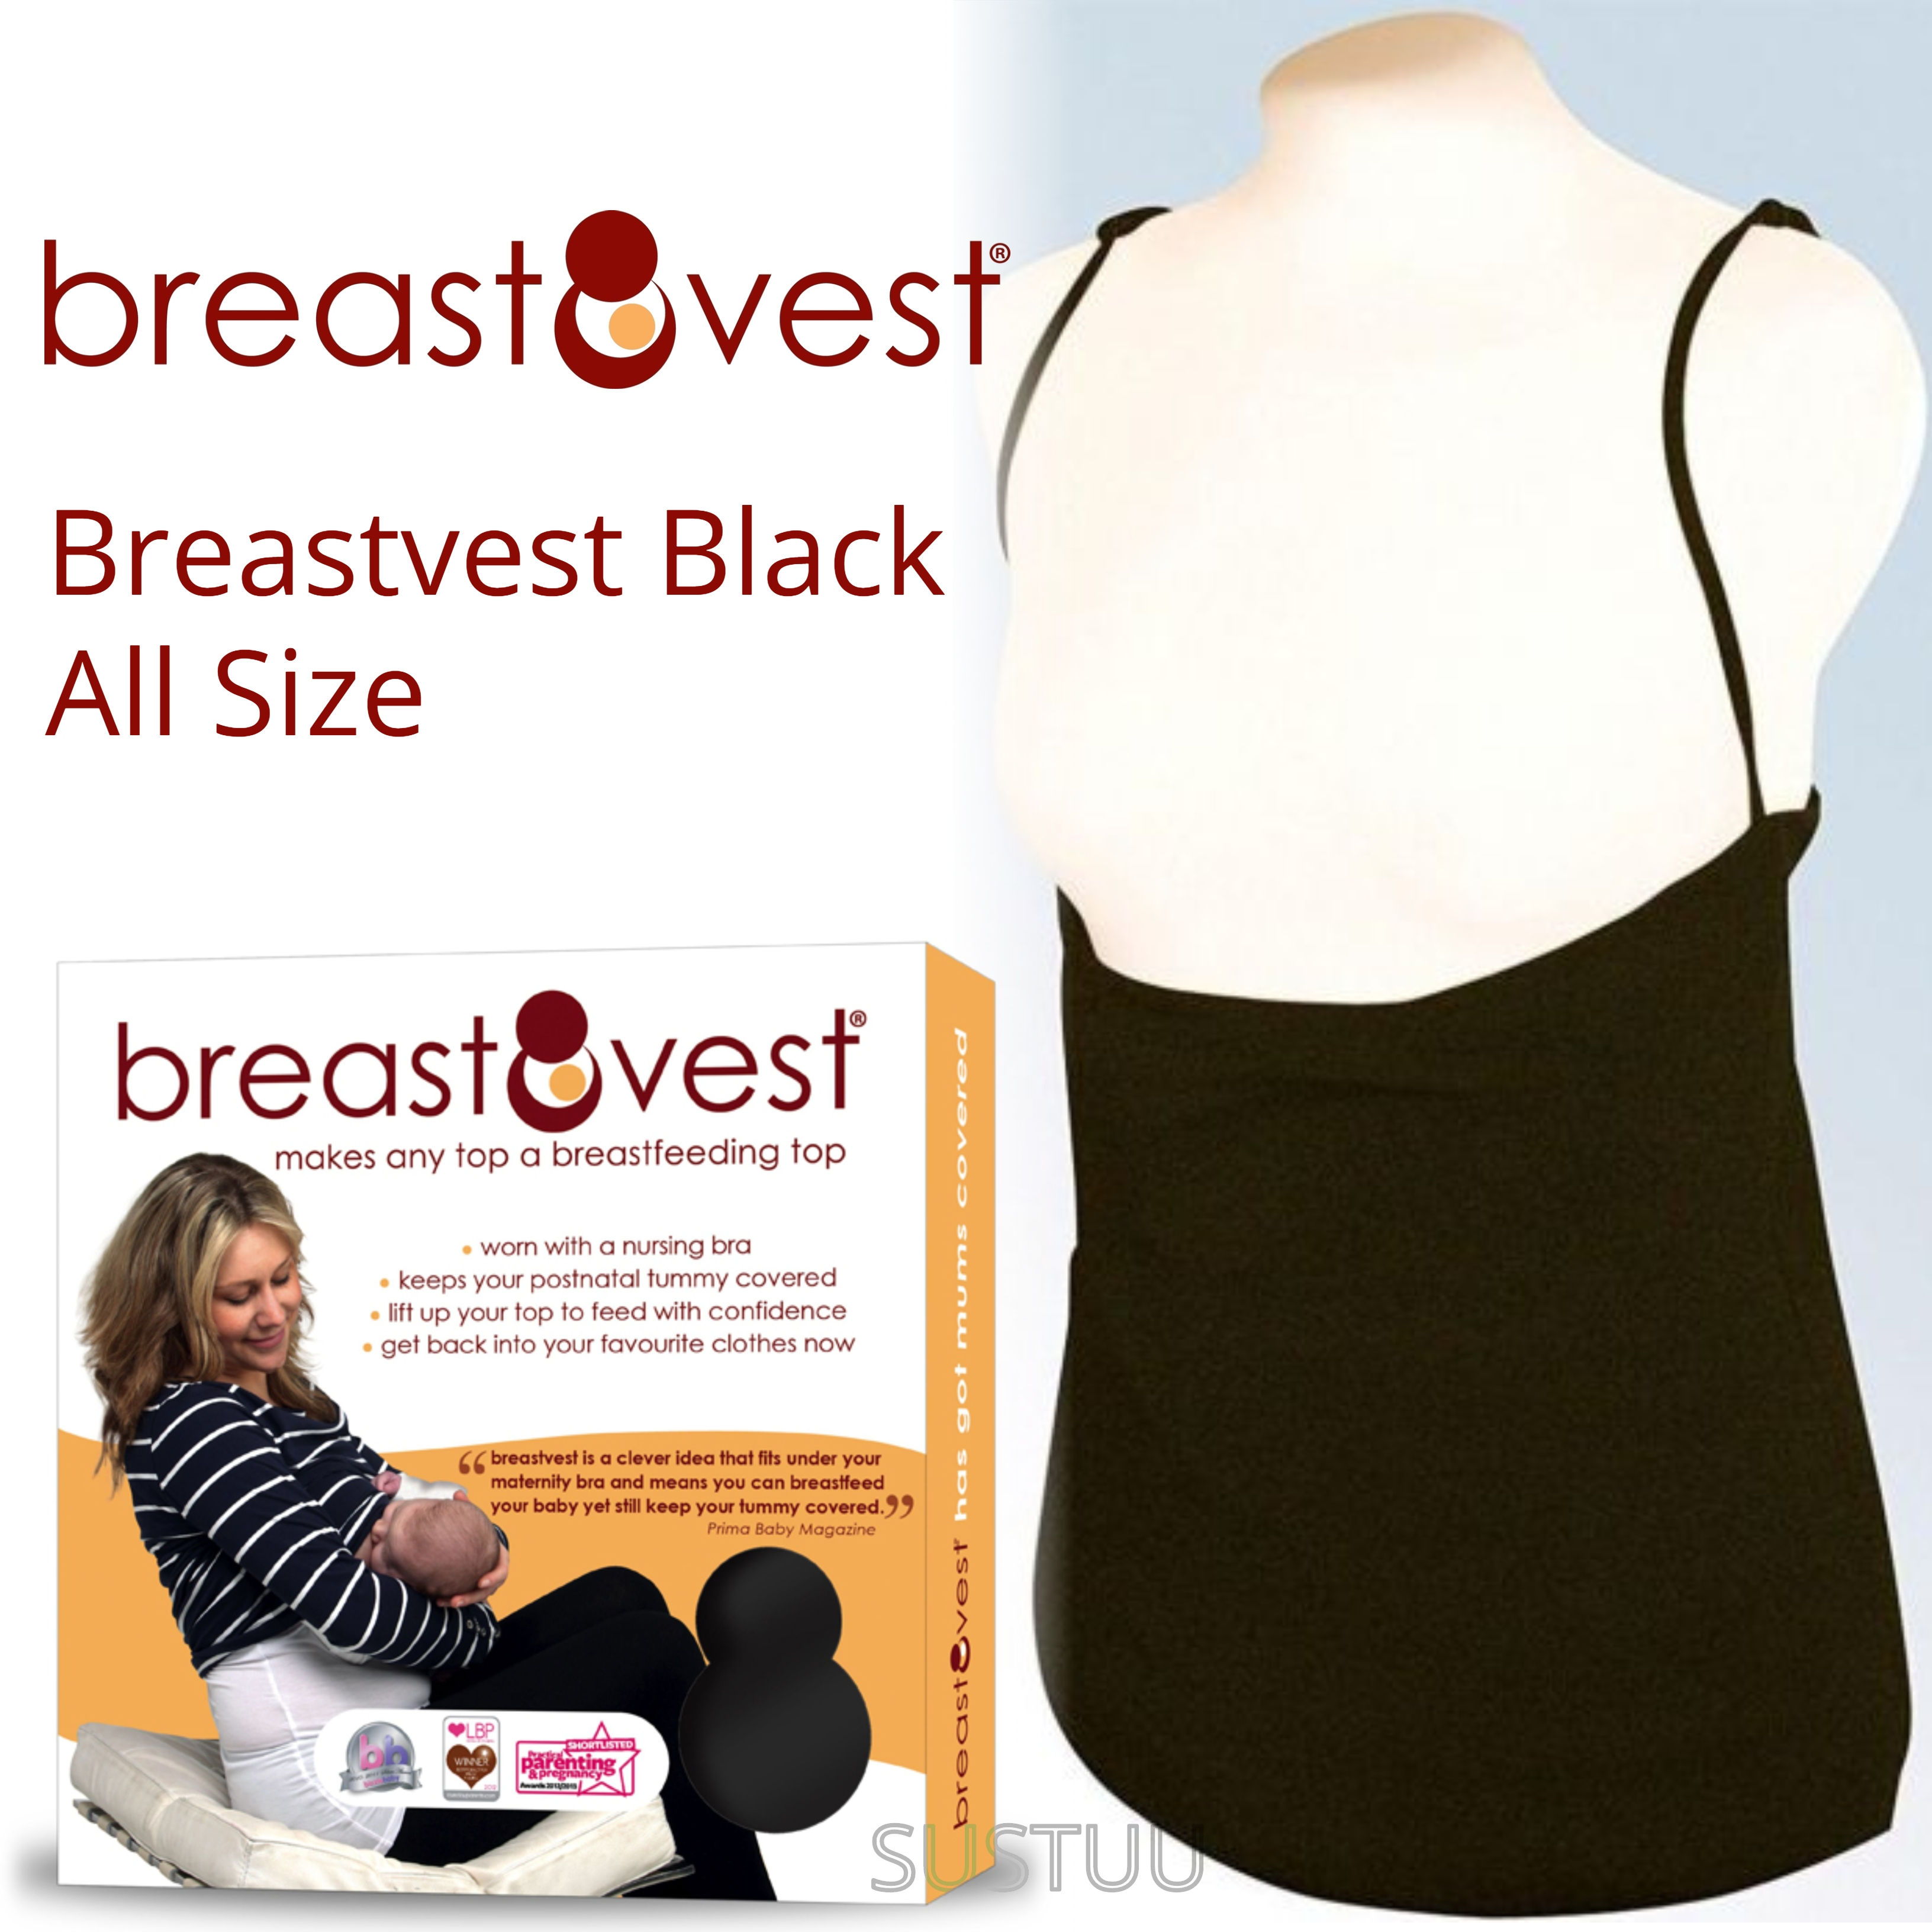 Breastvest Nursing Top Black|Maternity Clothing for Mum|Pregnancy Use|X Large